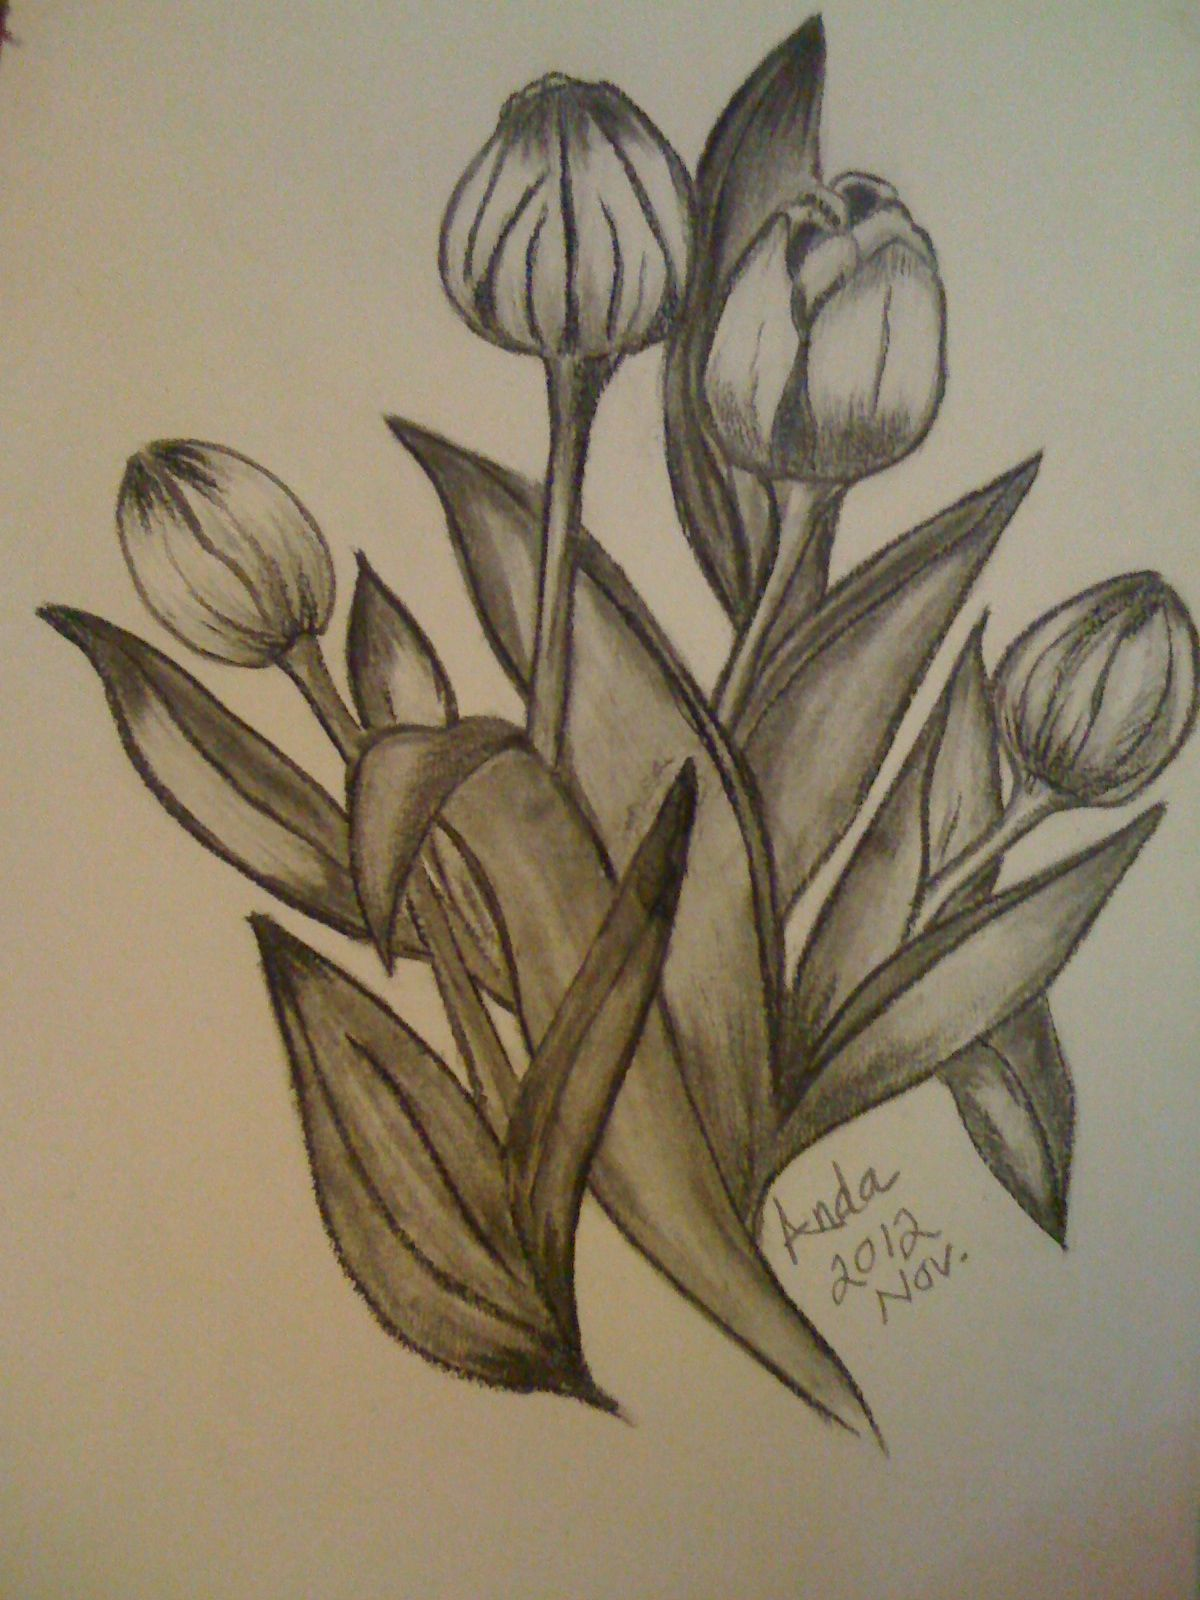 Tulip Flowers i used (Charcoal & Pencil) A3 size My